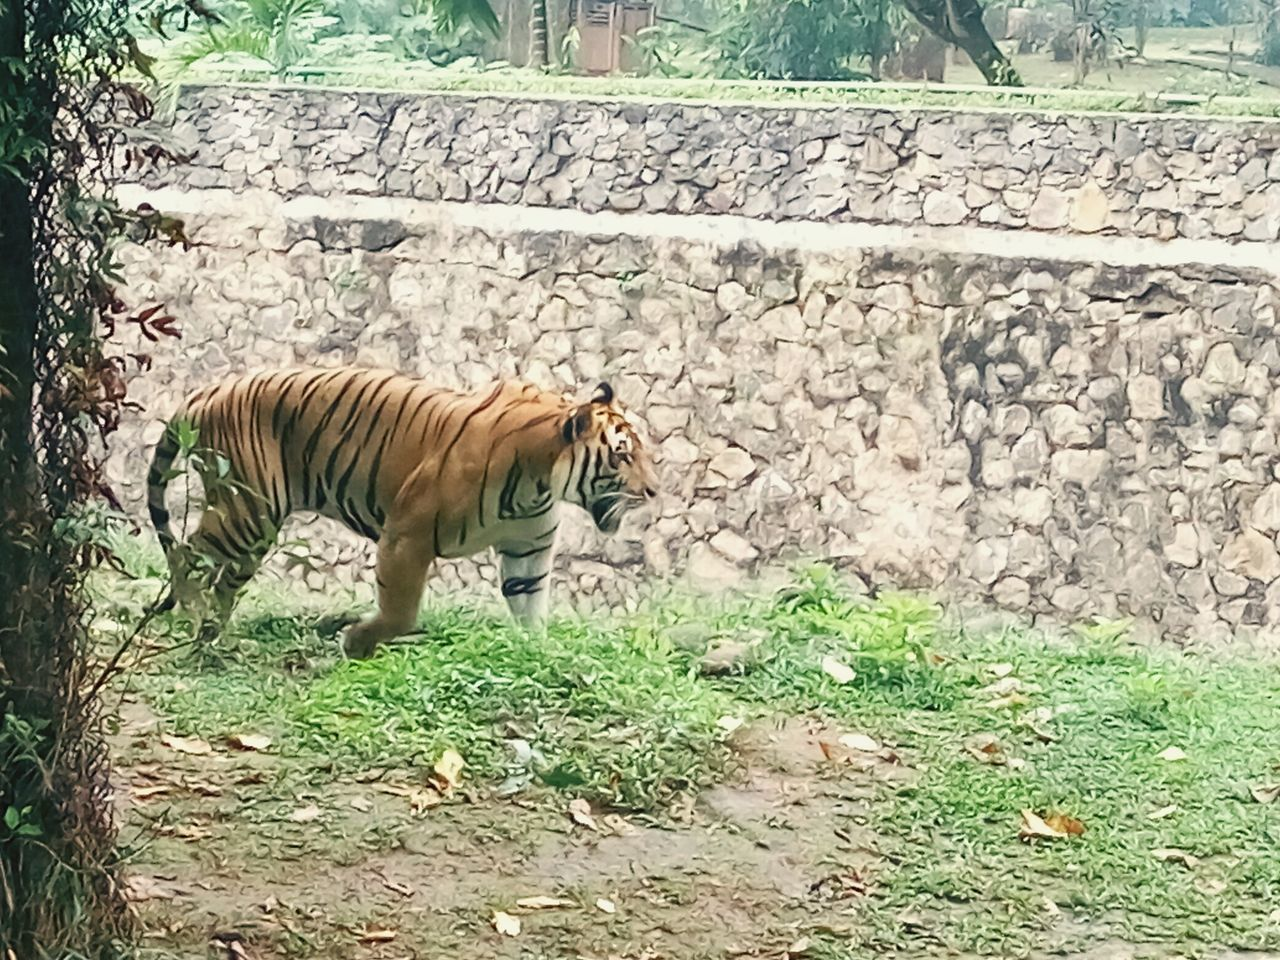 Sumatra Tiger One Animal Animal Themes Animals In The Wild Tiger Outdoors Zoo Animal Wildlife Nature INDONESIA Beauty In Nature